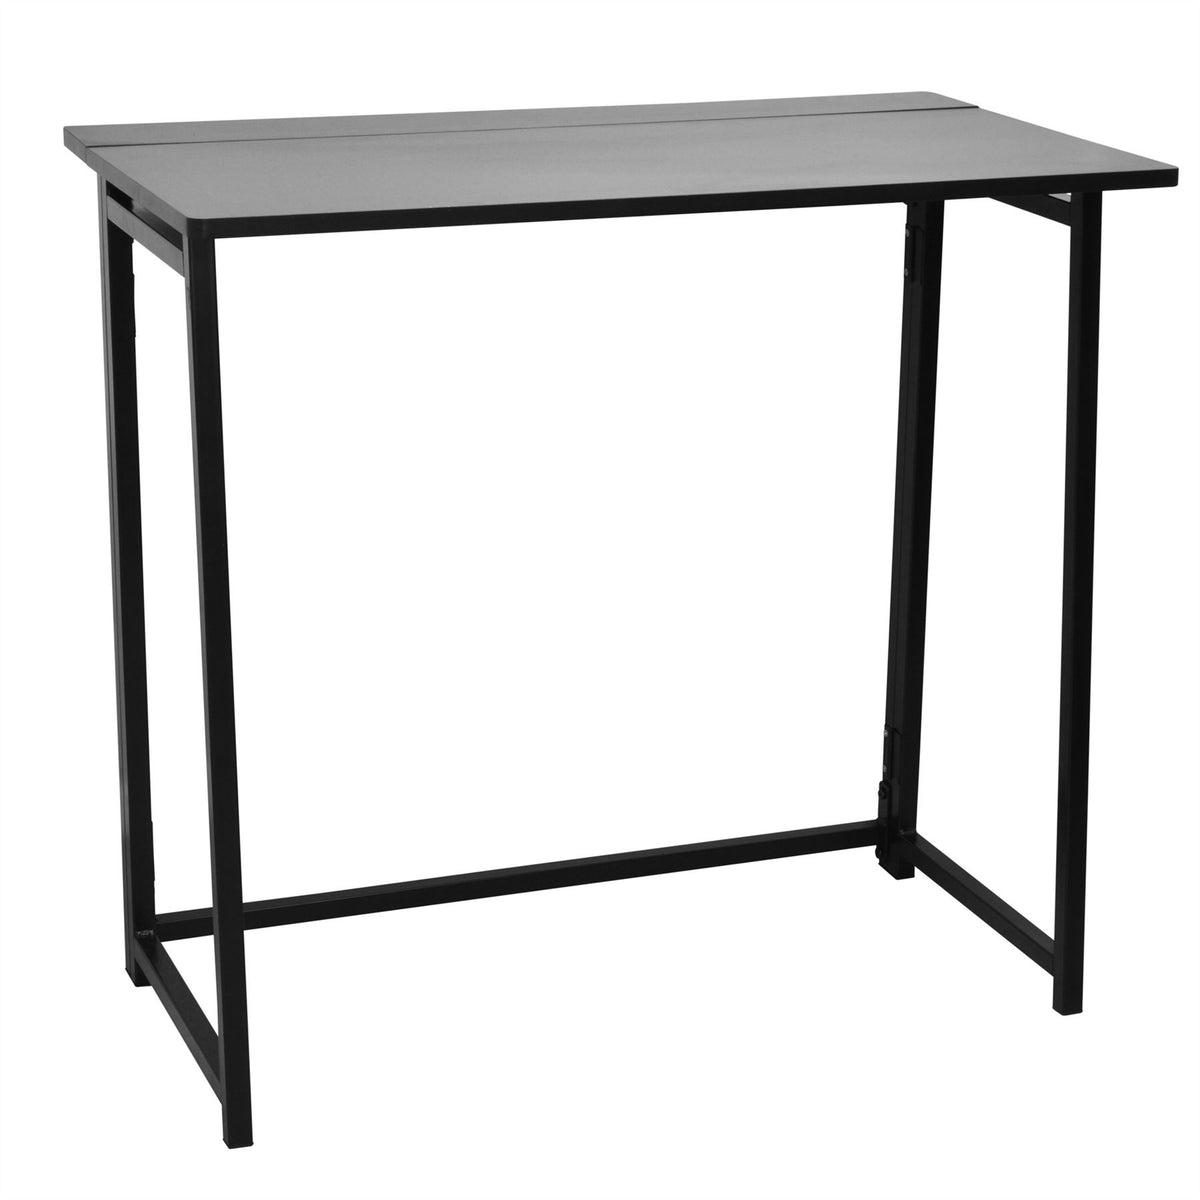 Harbour Housewares Folding Space Saver Desk - Black